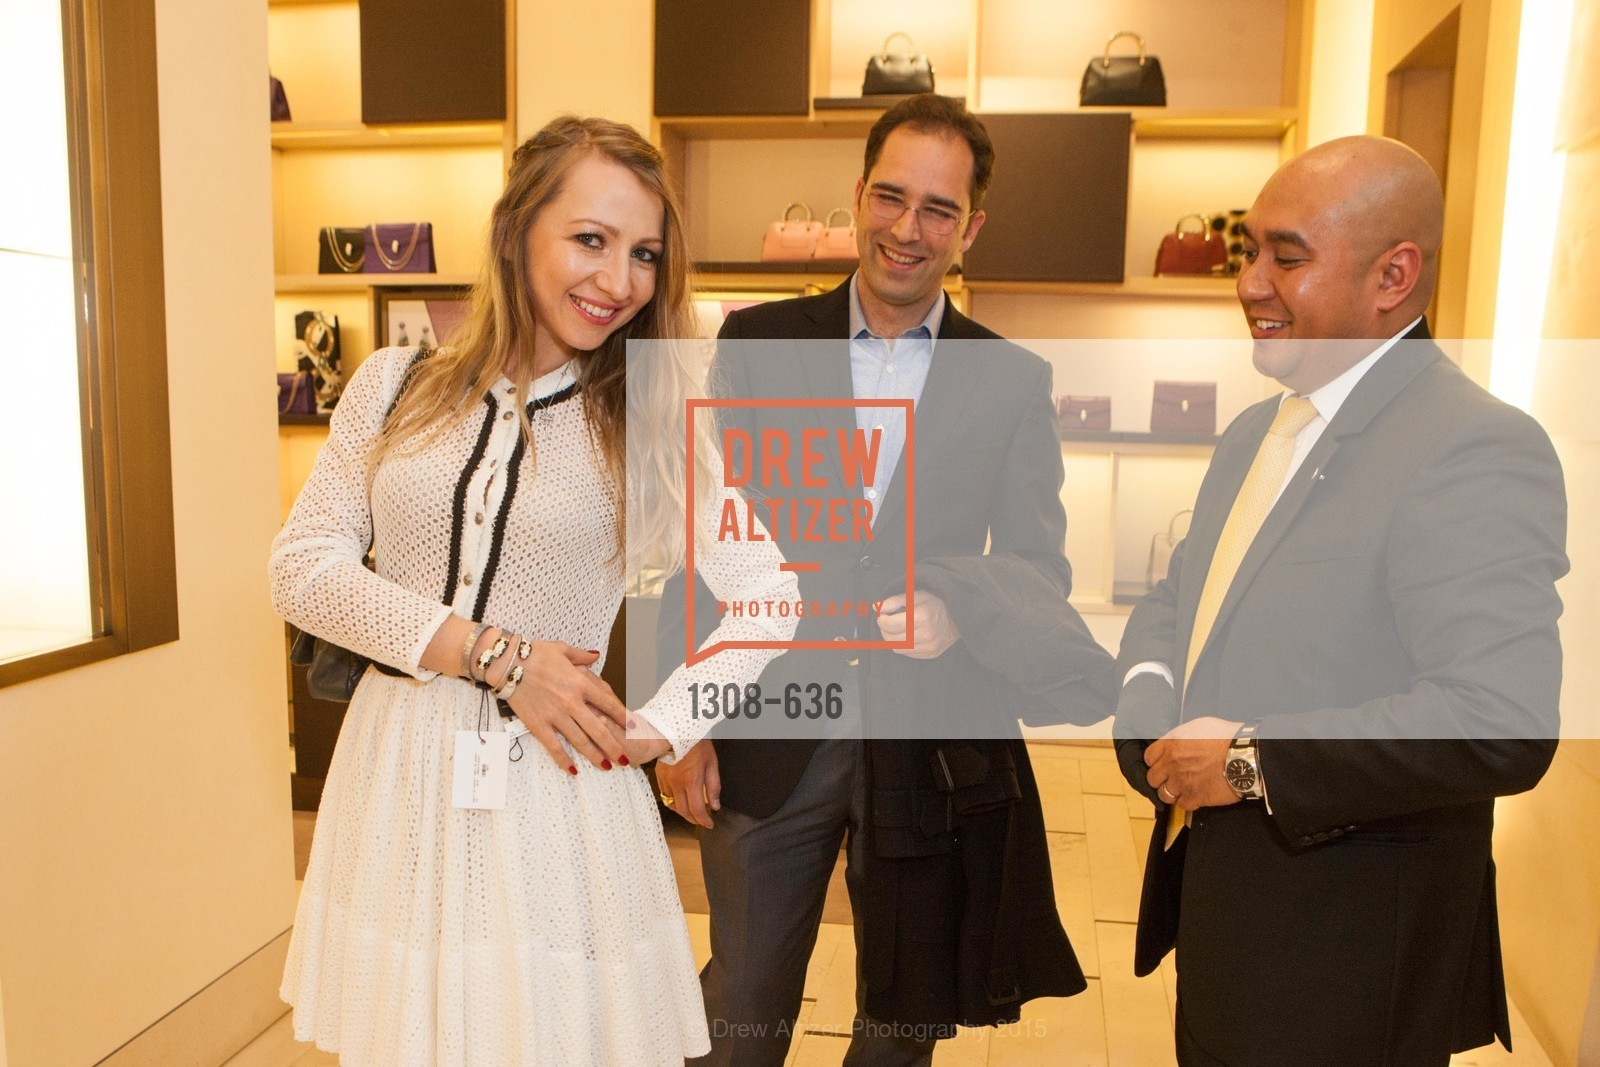 Svetlana Gilenko, Paul Wagner, Eric Padua, Bulgari San Francisco Presents WINE, WHISKEY & WATCHES, Bulgari San Francisco. 200 Stockton Street, December 8th, 2015,Drew Altizer, Drew Altizer Photography, full-service agency, private events, San Francisco photographer, photographer california